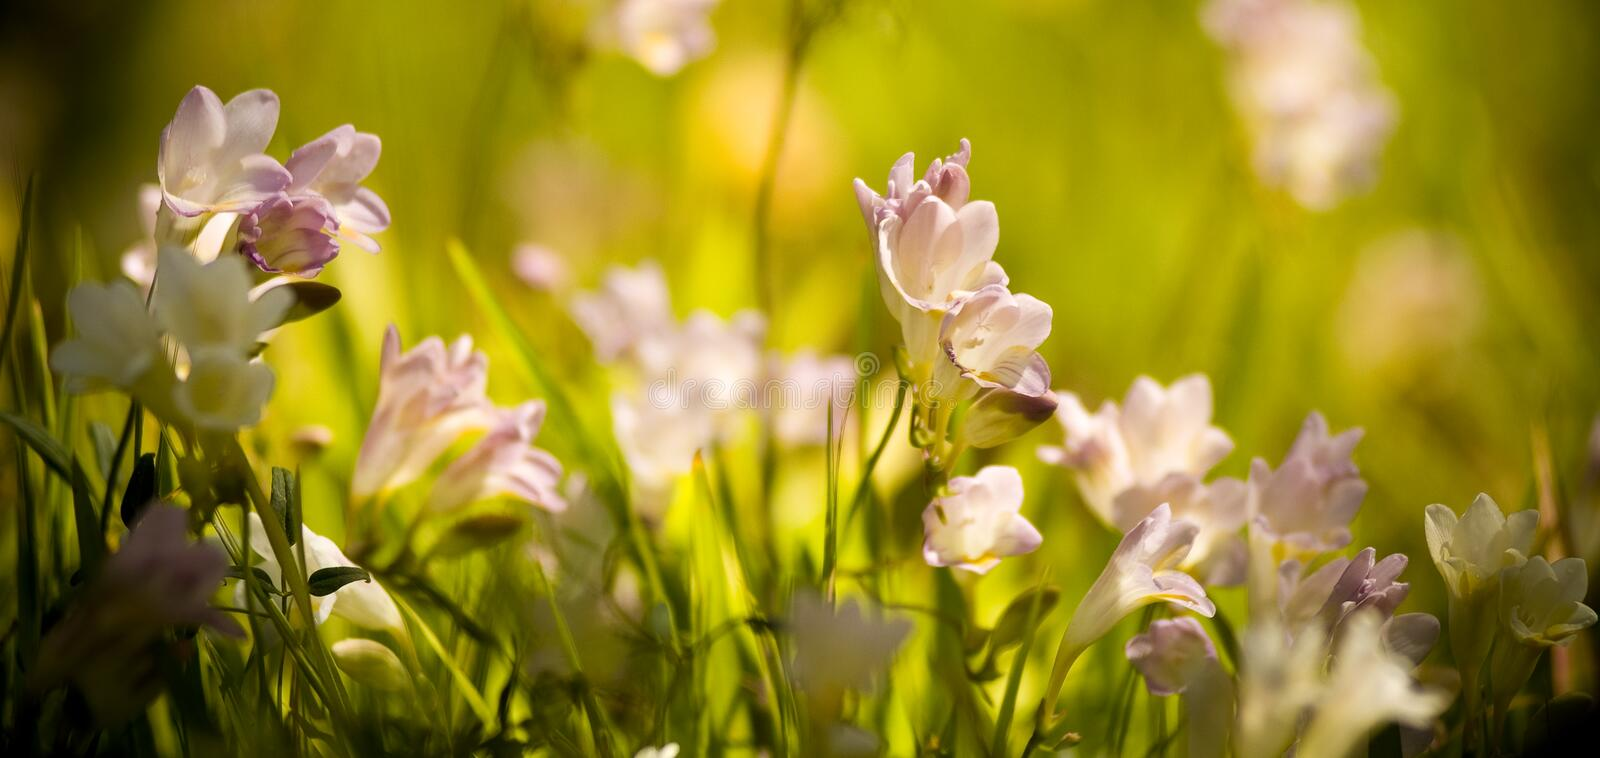 Wildflowers. Glow in the sun during spring stock photography